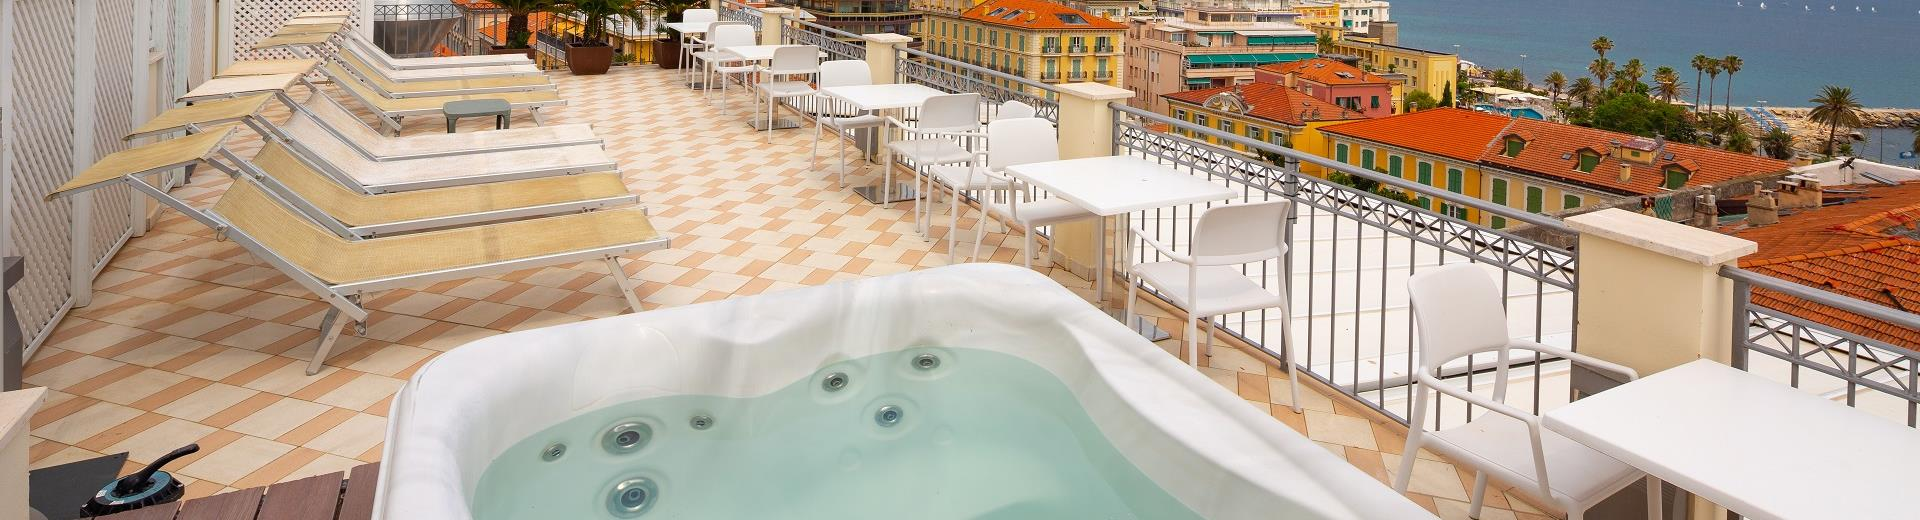 Relax in the rooftop terrace of our Sanremo hotel with jacuzzi